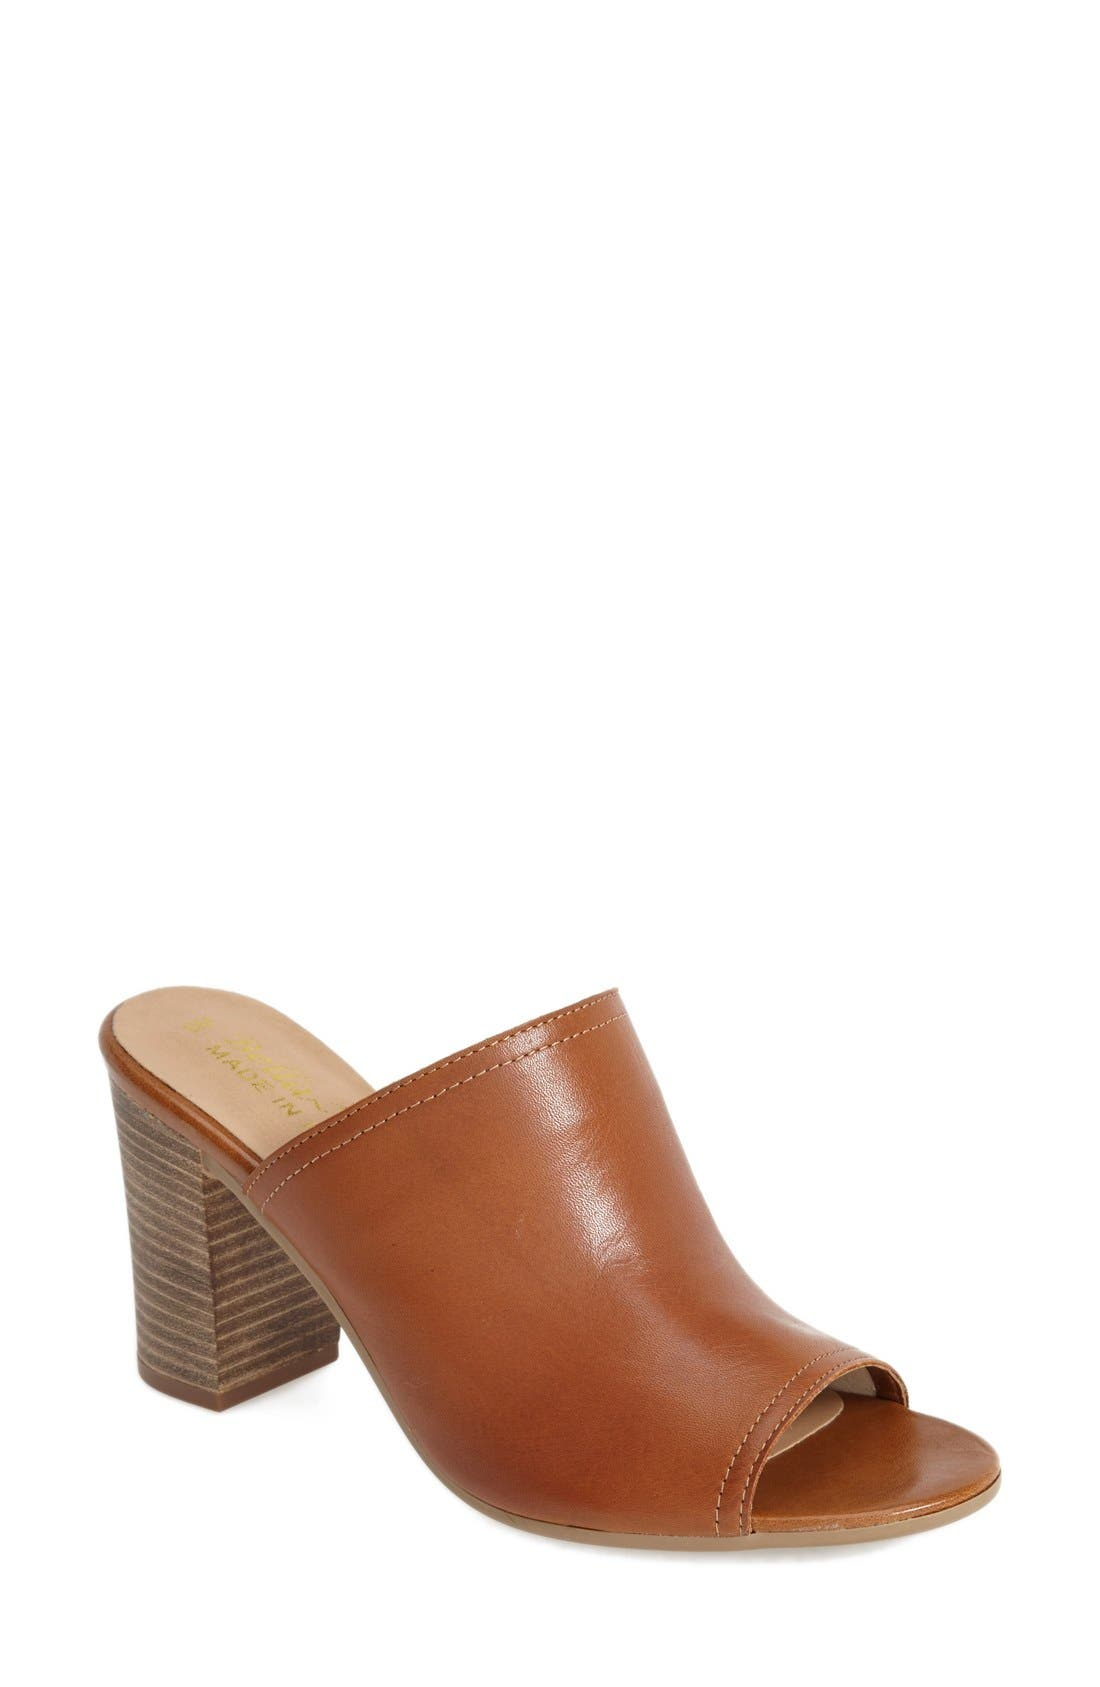 Main Image - Bella Vita 'Arno' Leather Mule (Women)